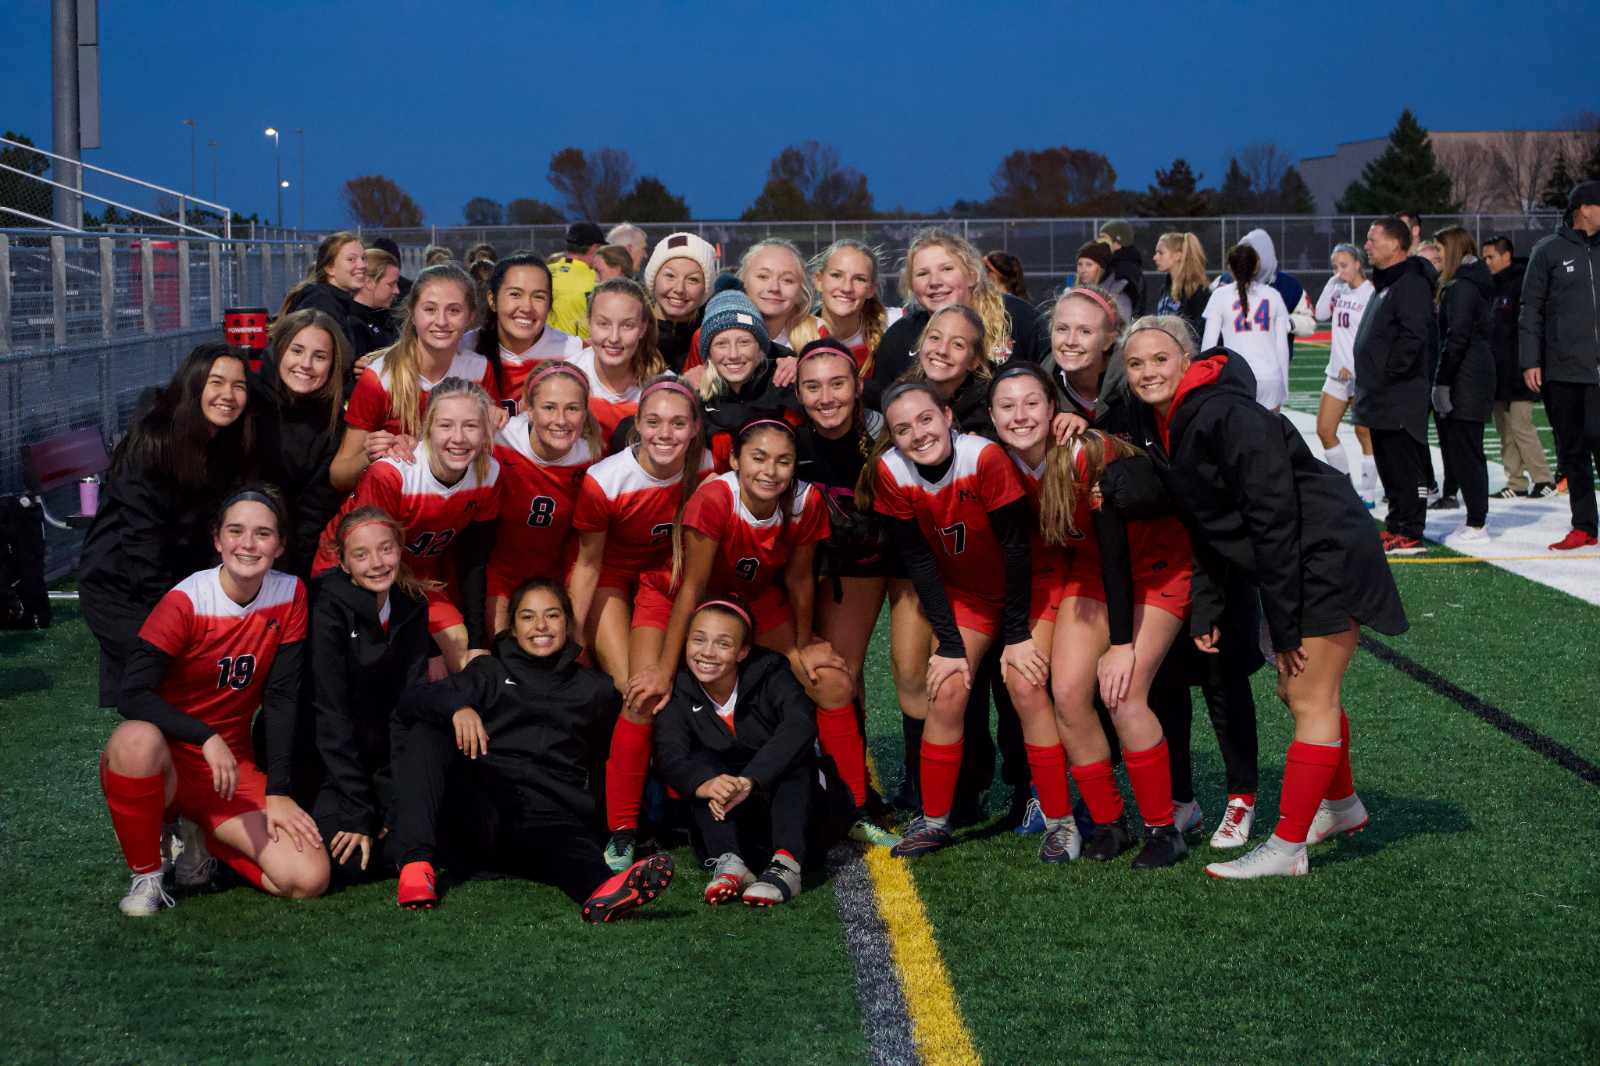 Monticello Girls Soccer advances to Section 6A Championship!